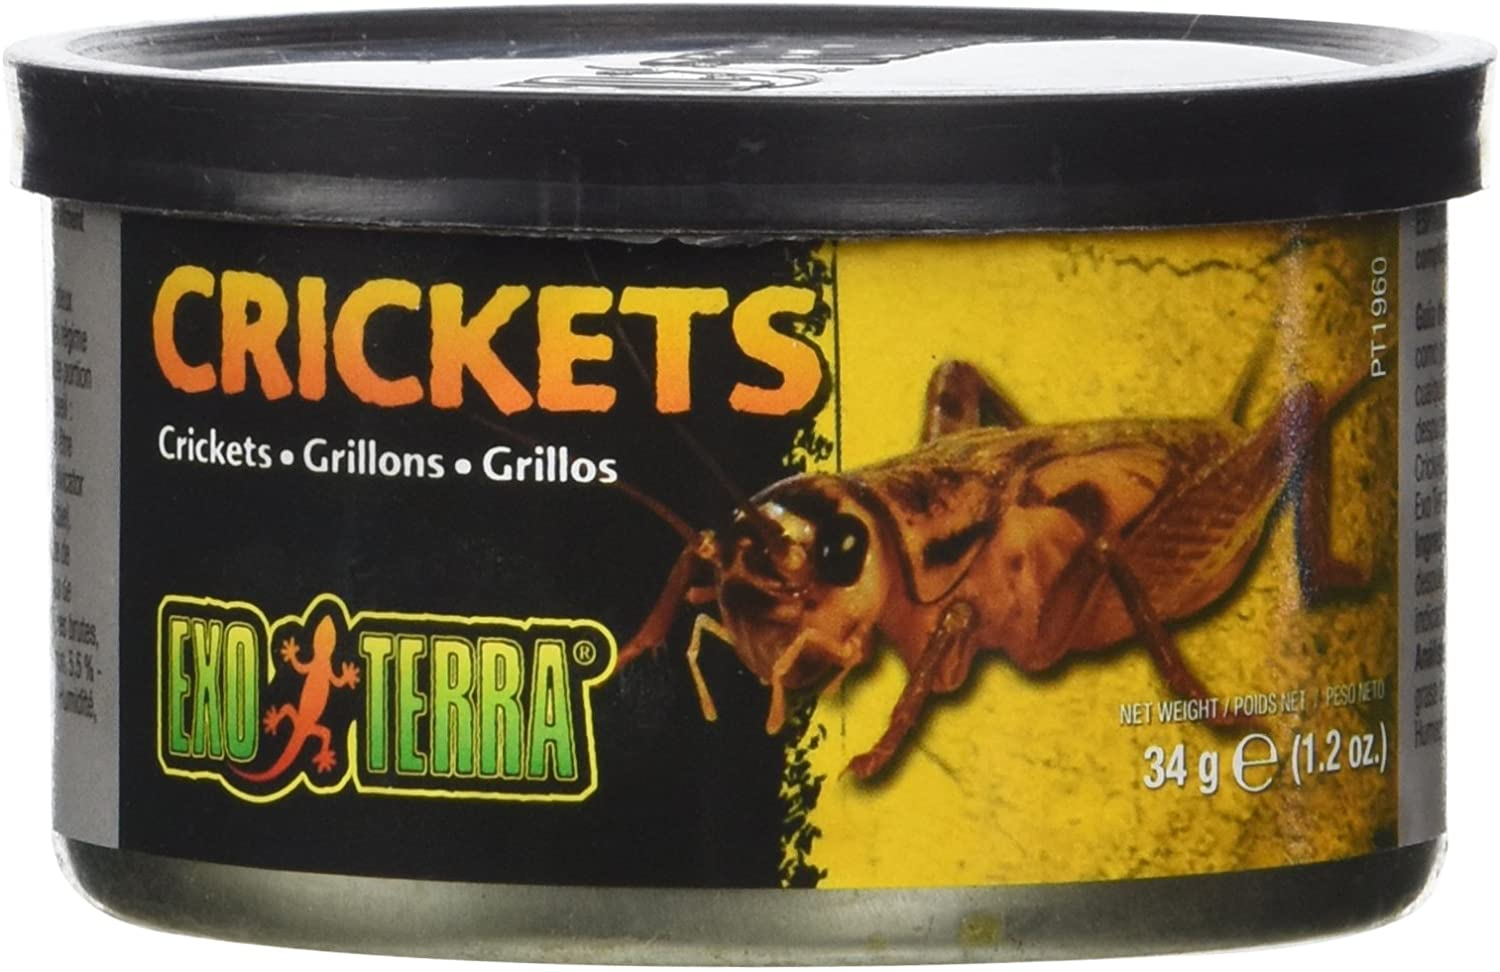 Exo Terra Specialty Reptile Food, Canned Crickets for Reptiles, PT1960